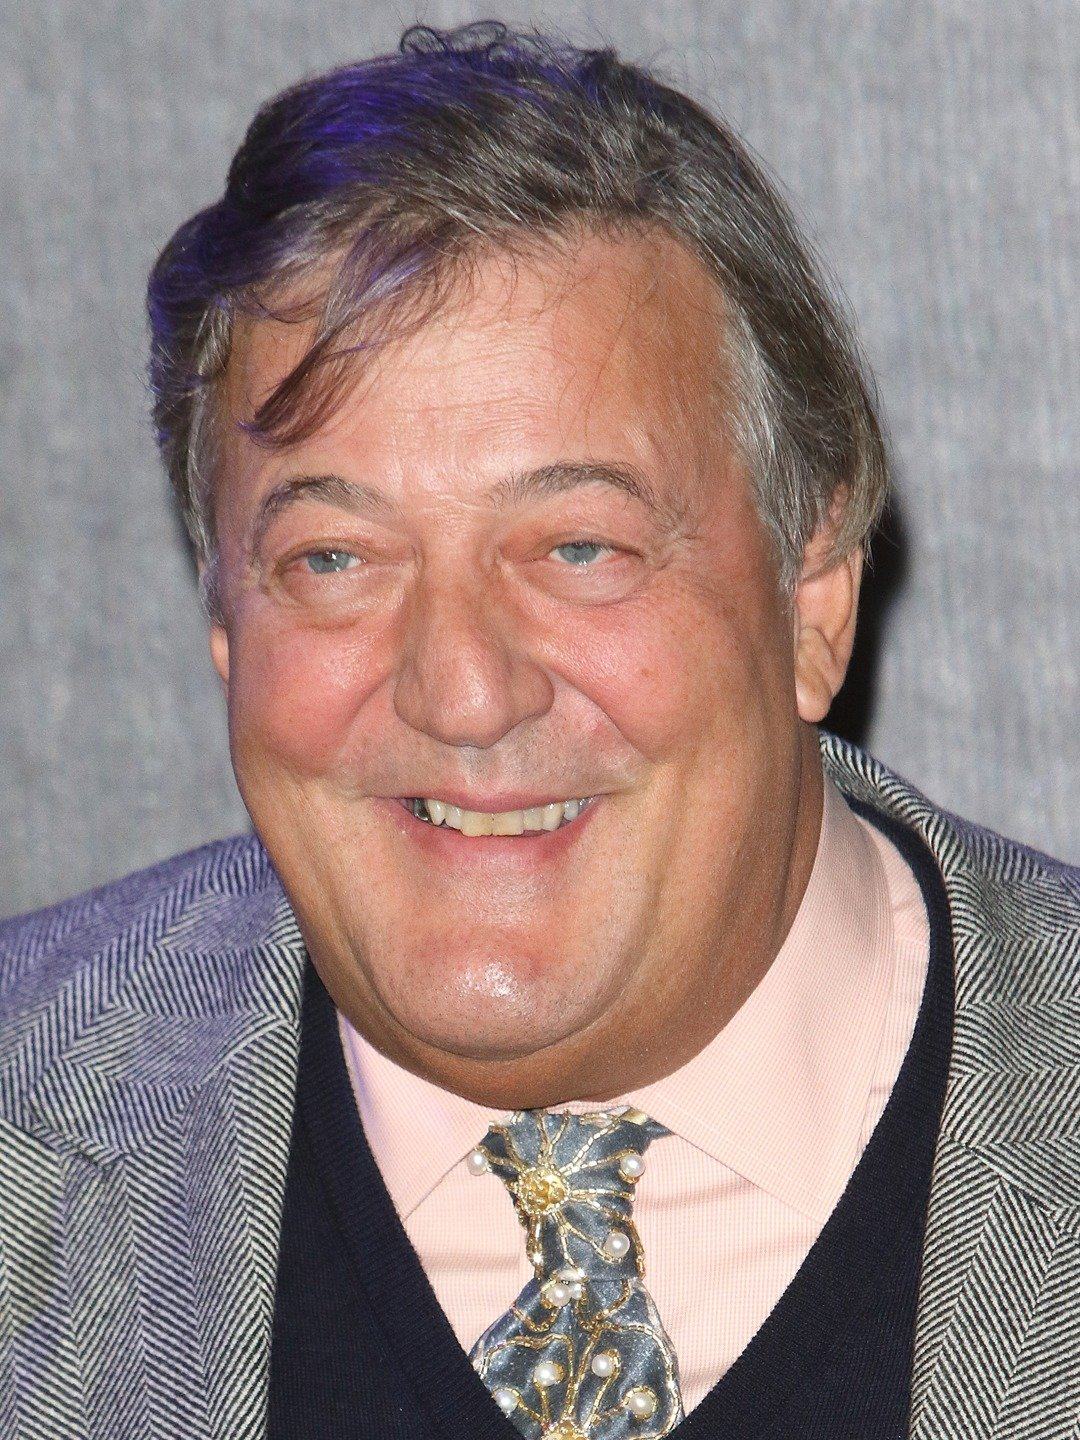 Stephen Fry British Actor, Comedian, Writer